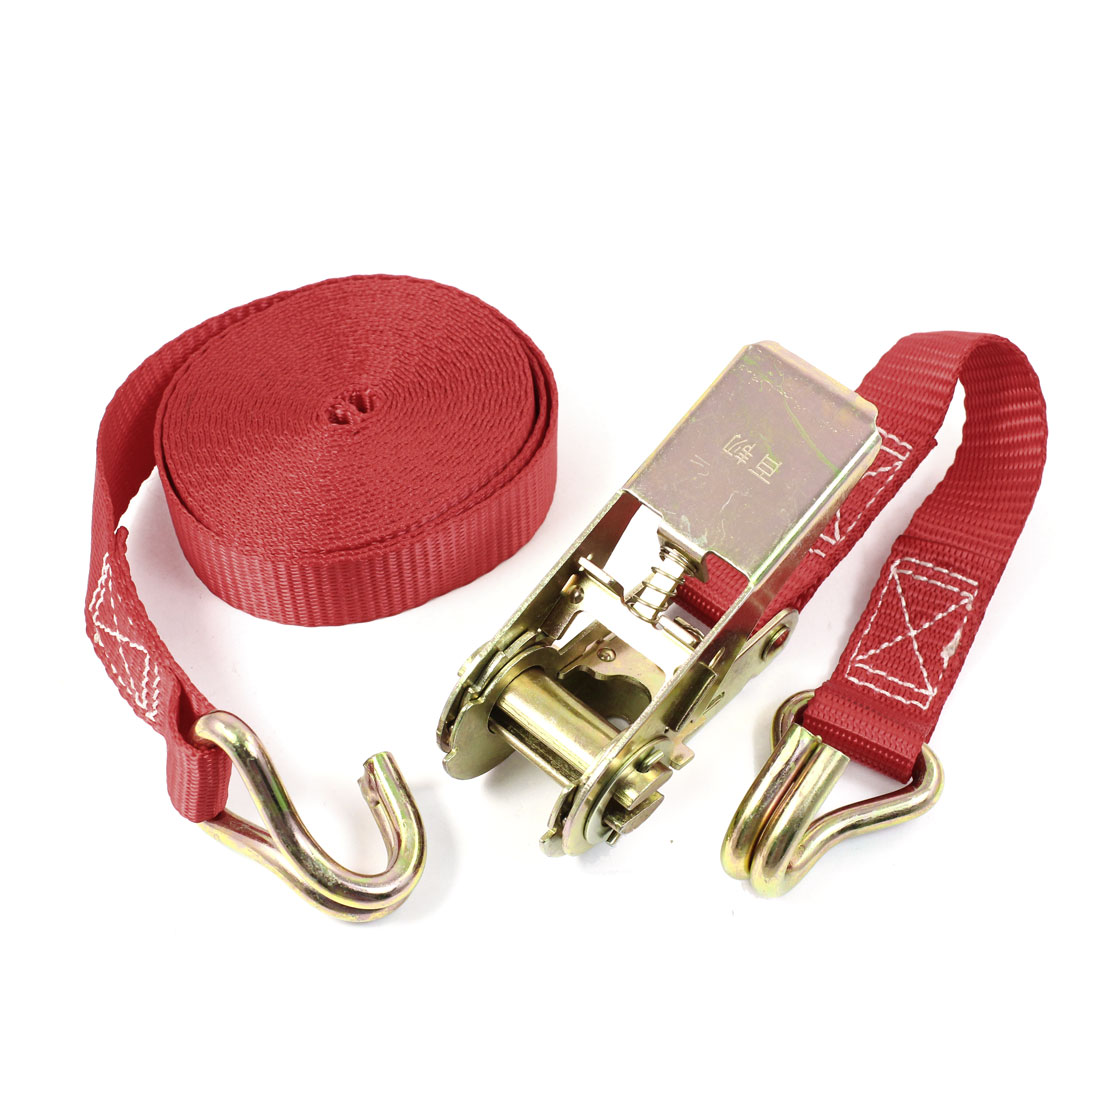 Dual Metal Hooks Cargo Binding Band Ratchet Tie Down Strap 5M 16ft Red